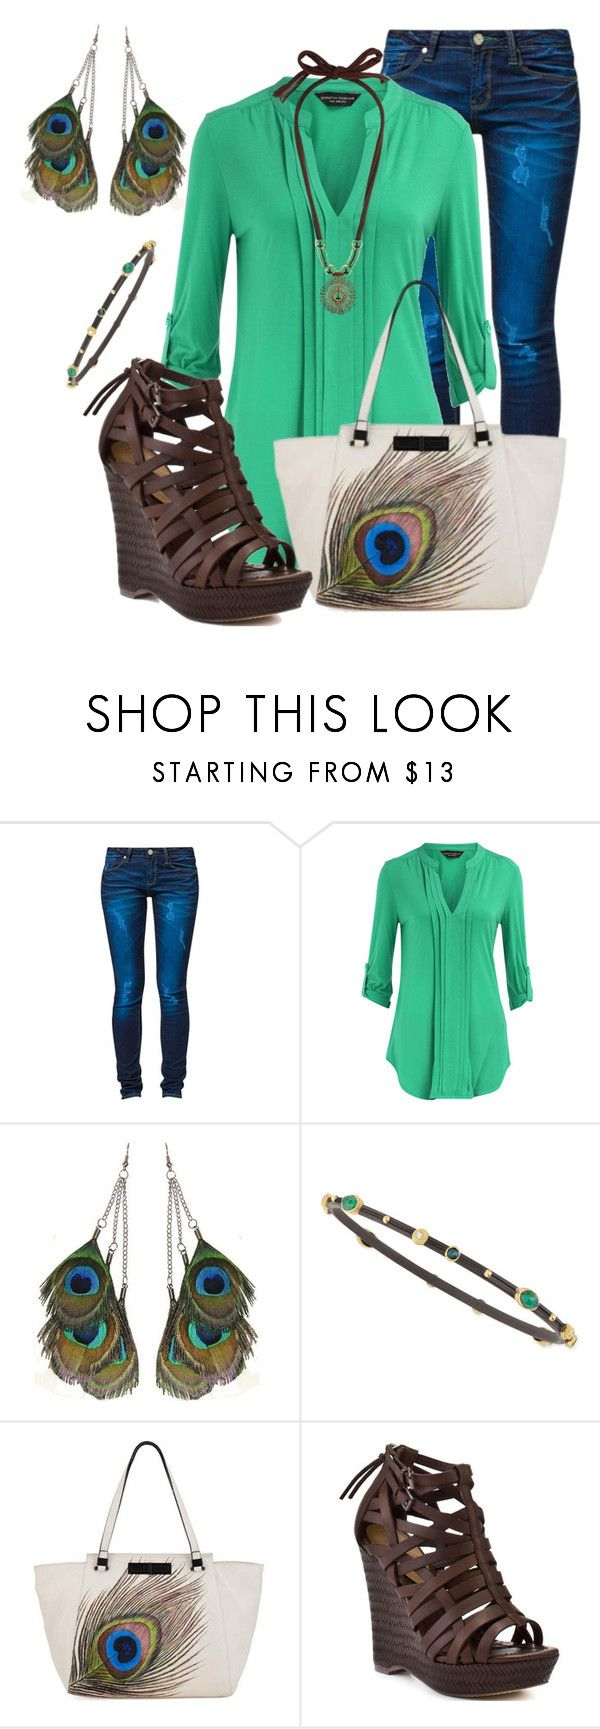 """""""Peacock"""" by jacci0528 ❤ liked on Polyvore featuring One Green Elephant, Dorothy Perkins, Armenta, Elliott Lucca, True Religion and Wallis"""